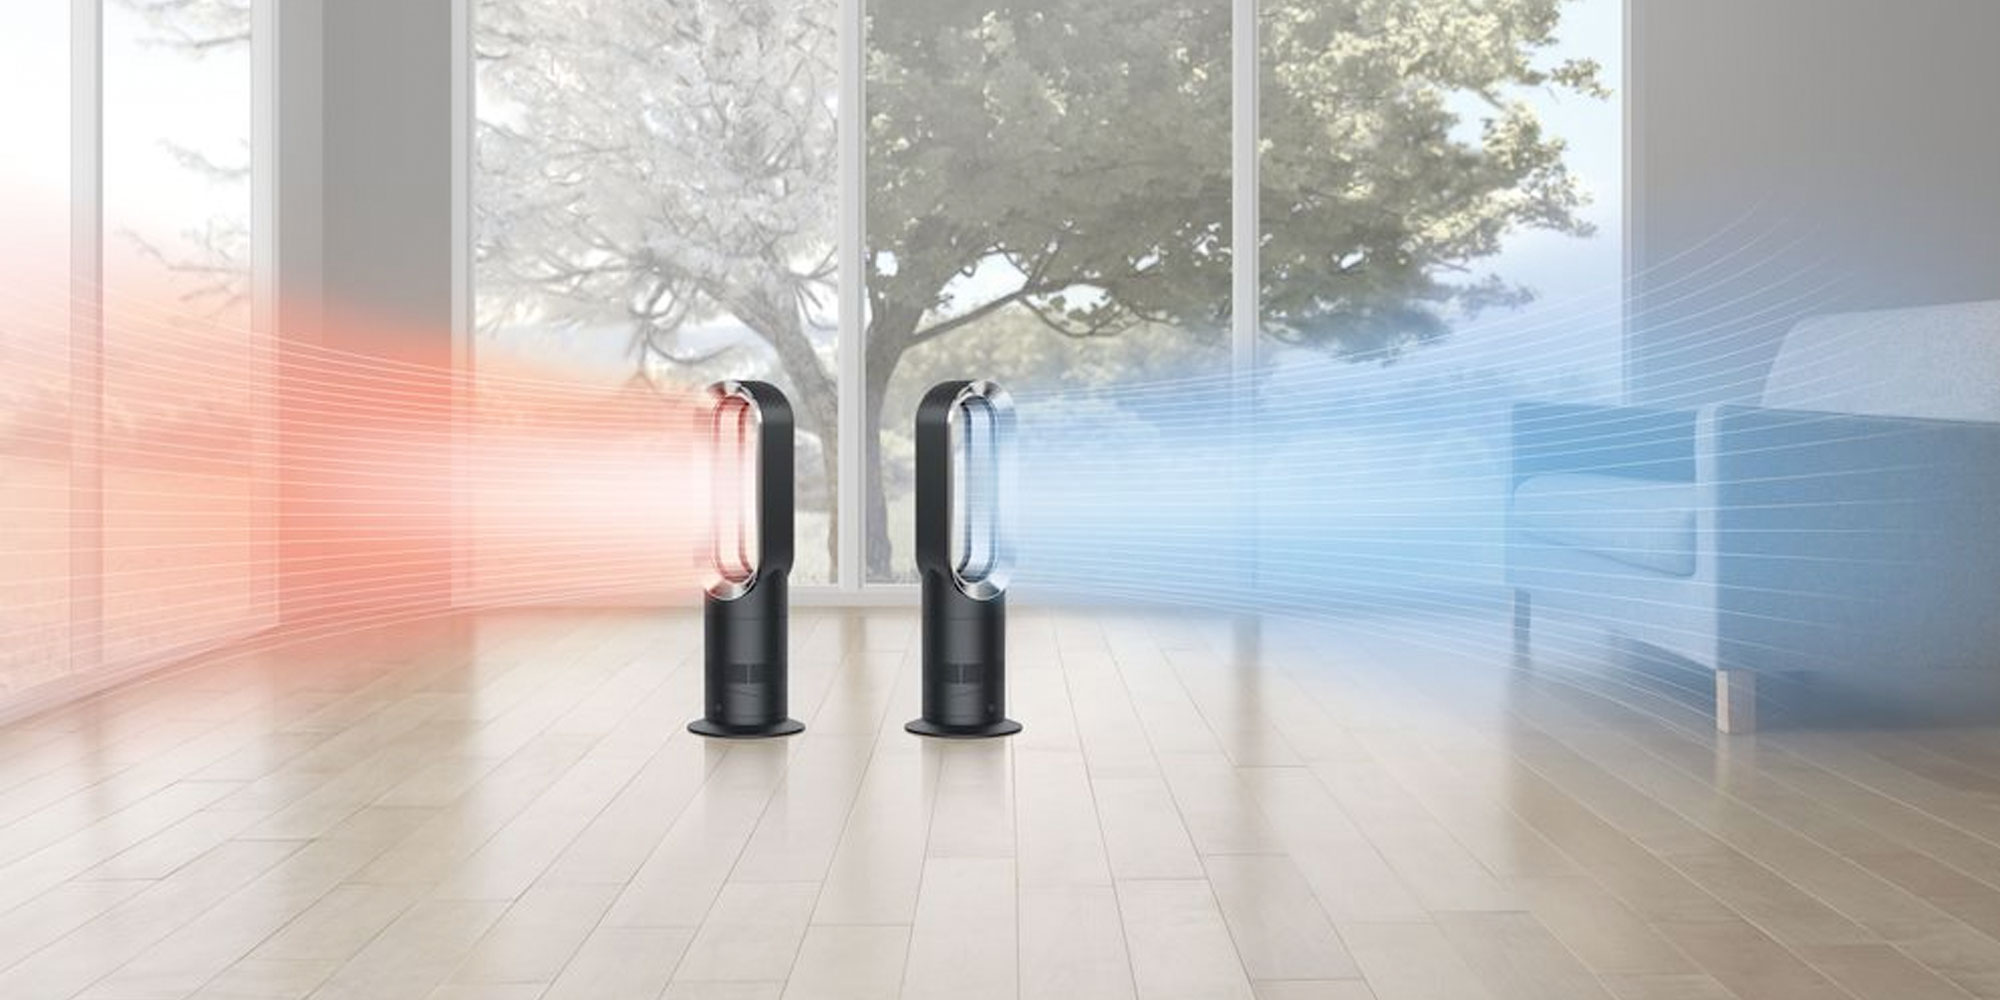 dyson 39 s am09 bladeless fan can heat or cool your home at 156 refurb orig 449 9to5toys. Black Bedroom Furniture Sets. Home Design Ideas